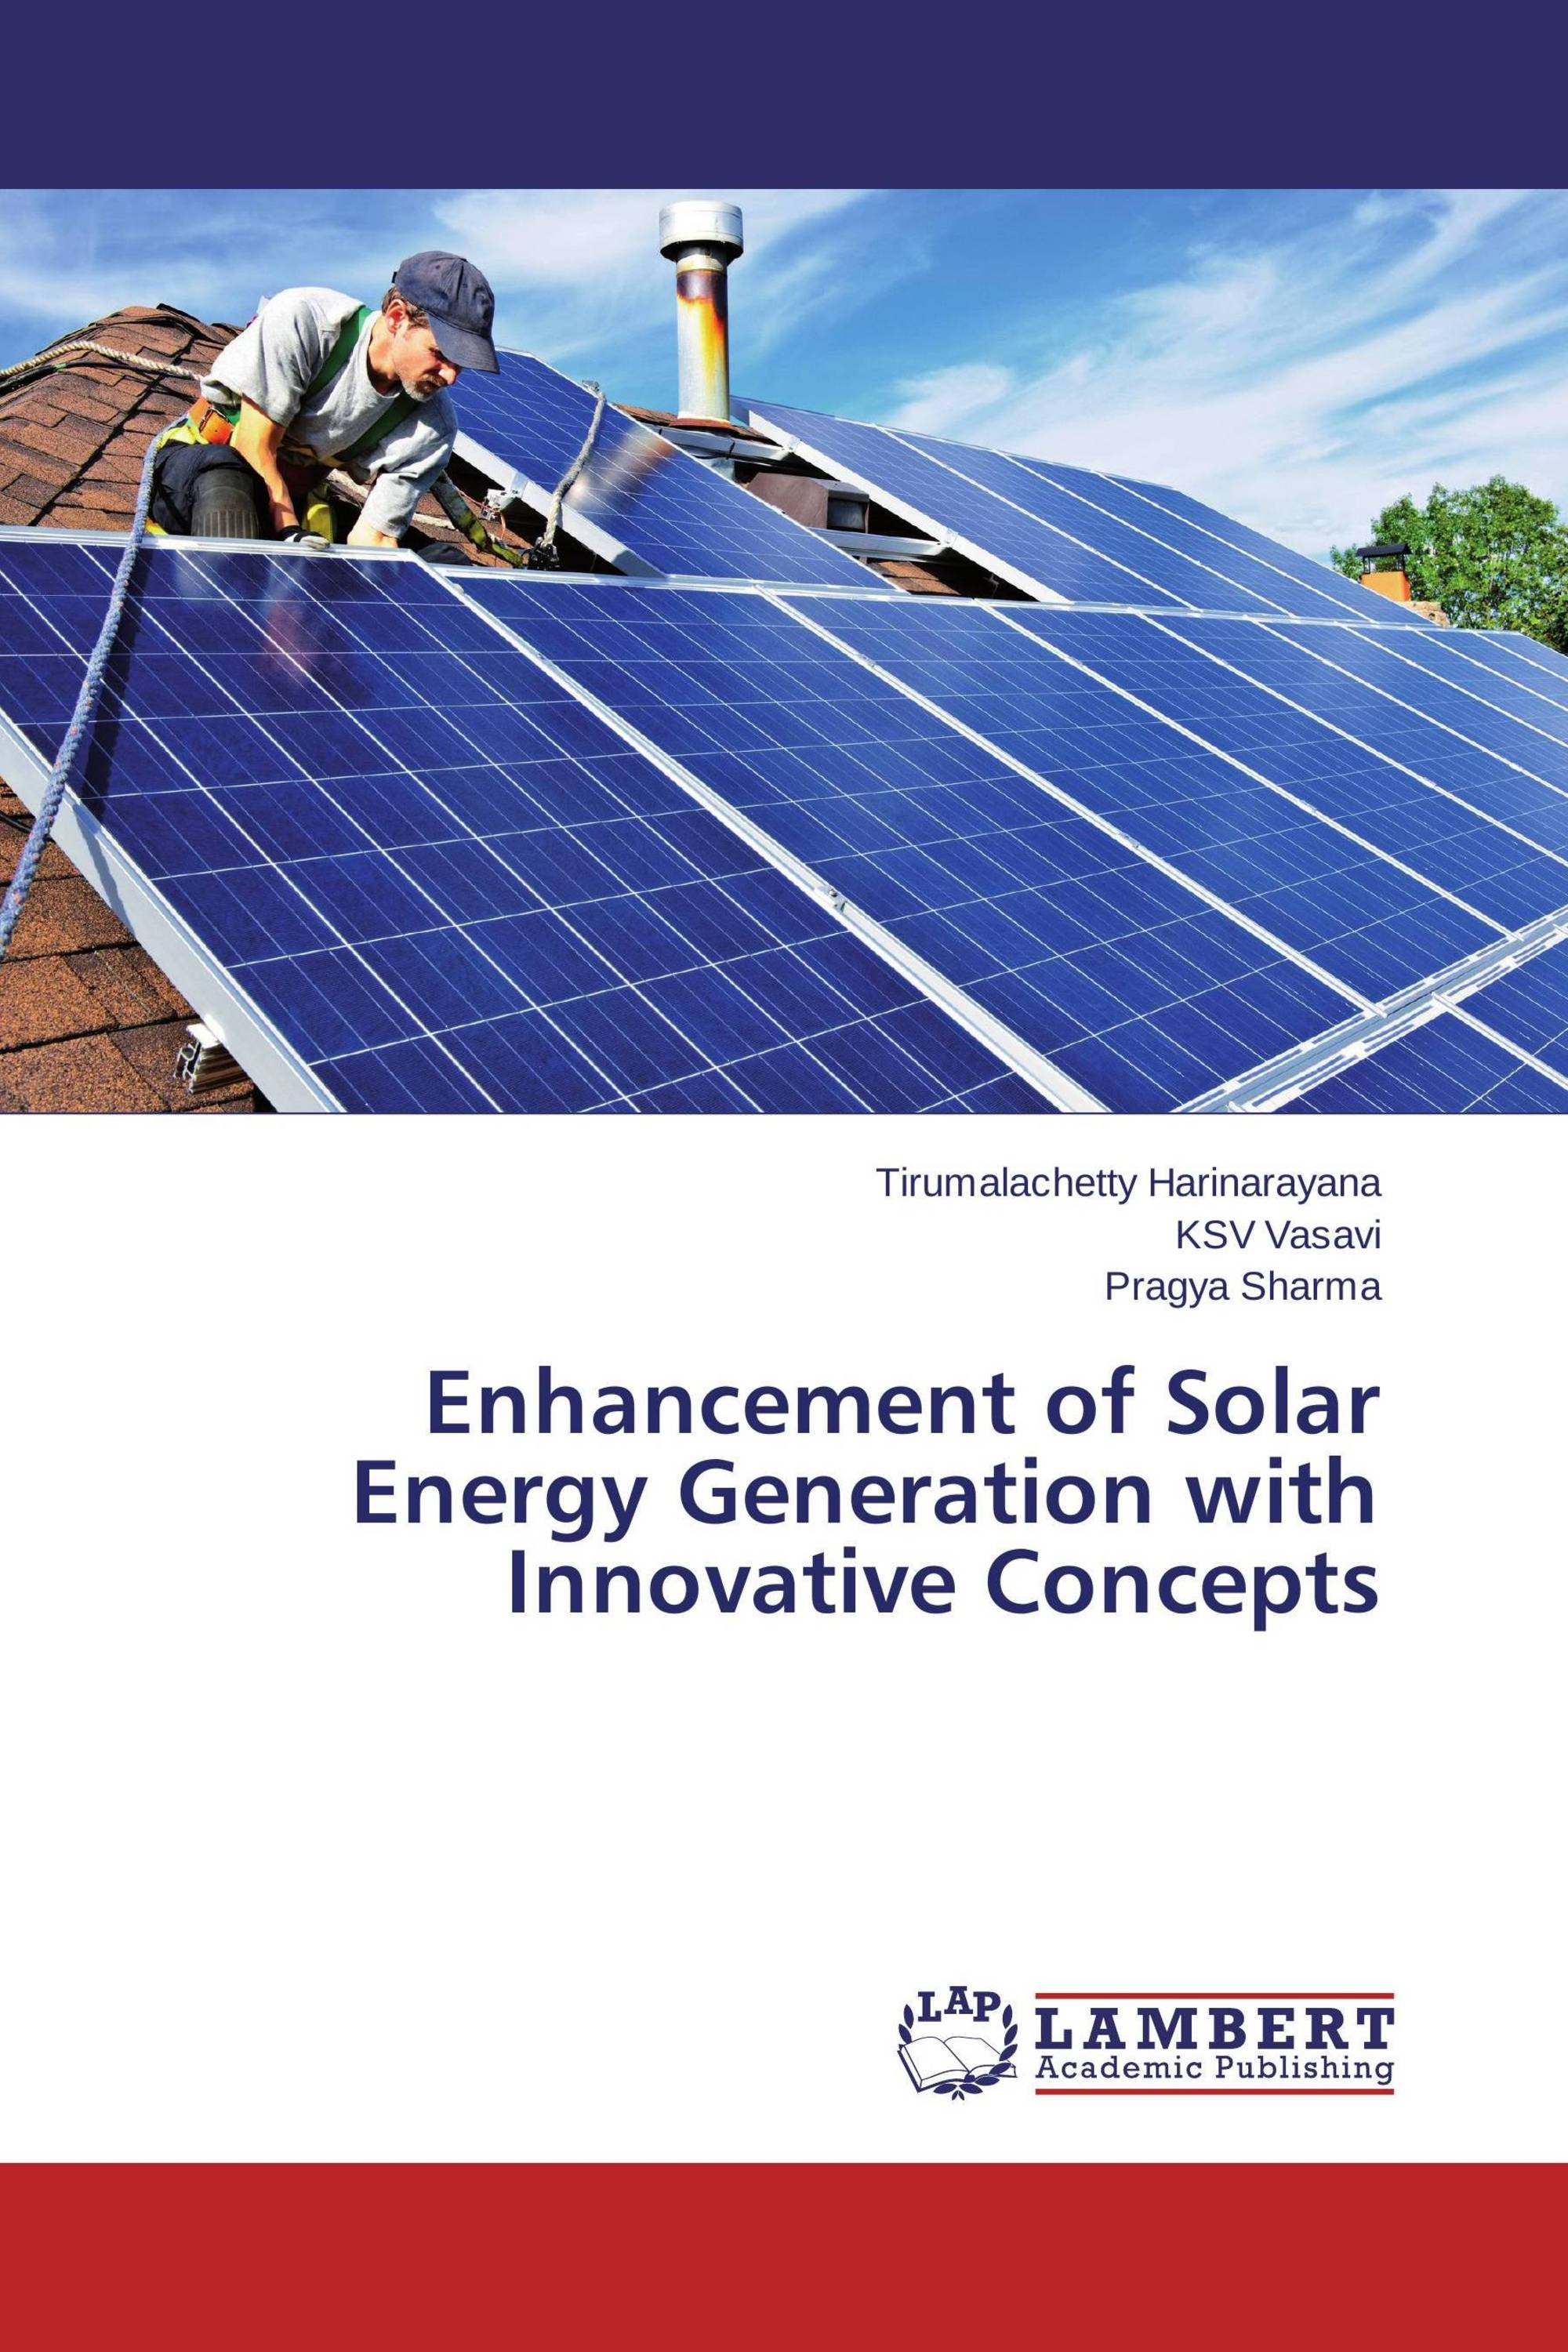 Enhancement of Solar Energy Generation with Innovative Concepts